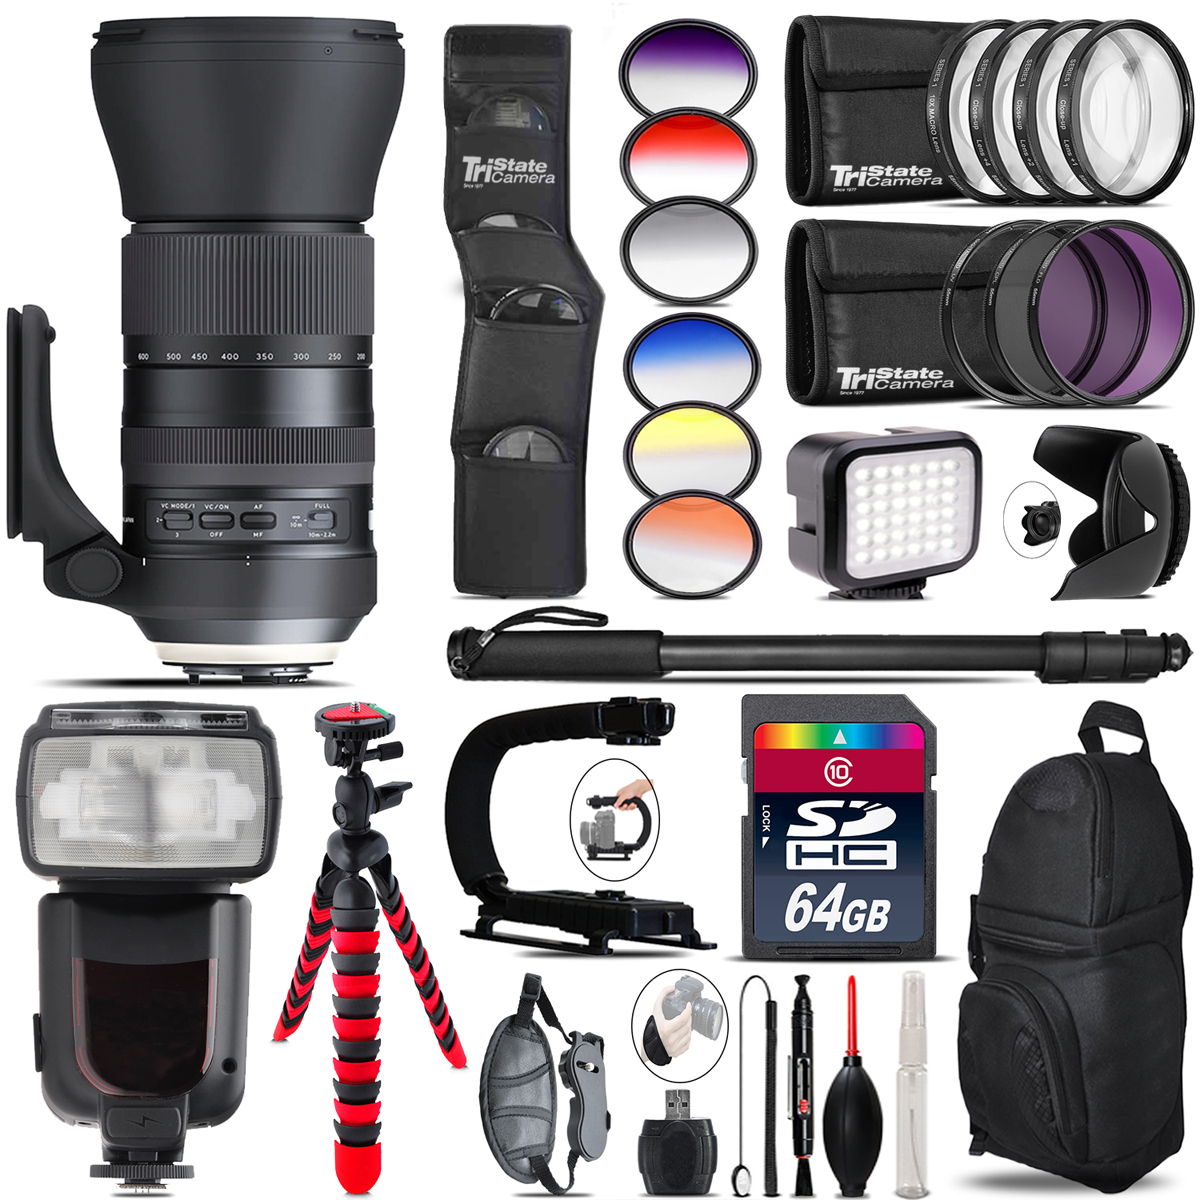 Tamron 150-600mm G2 for Canon + Pro Flash + LED Light - 64GB Accessory Bundle *FREE SHIPPING*